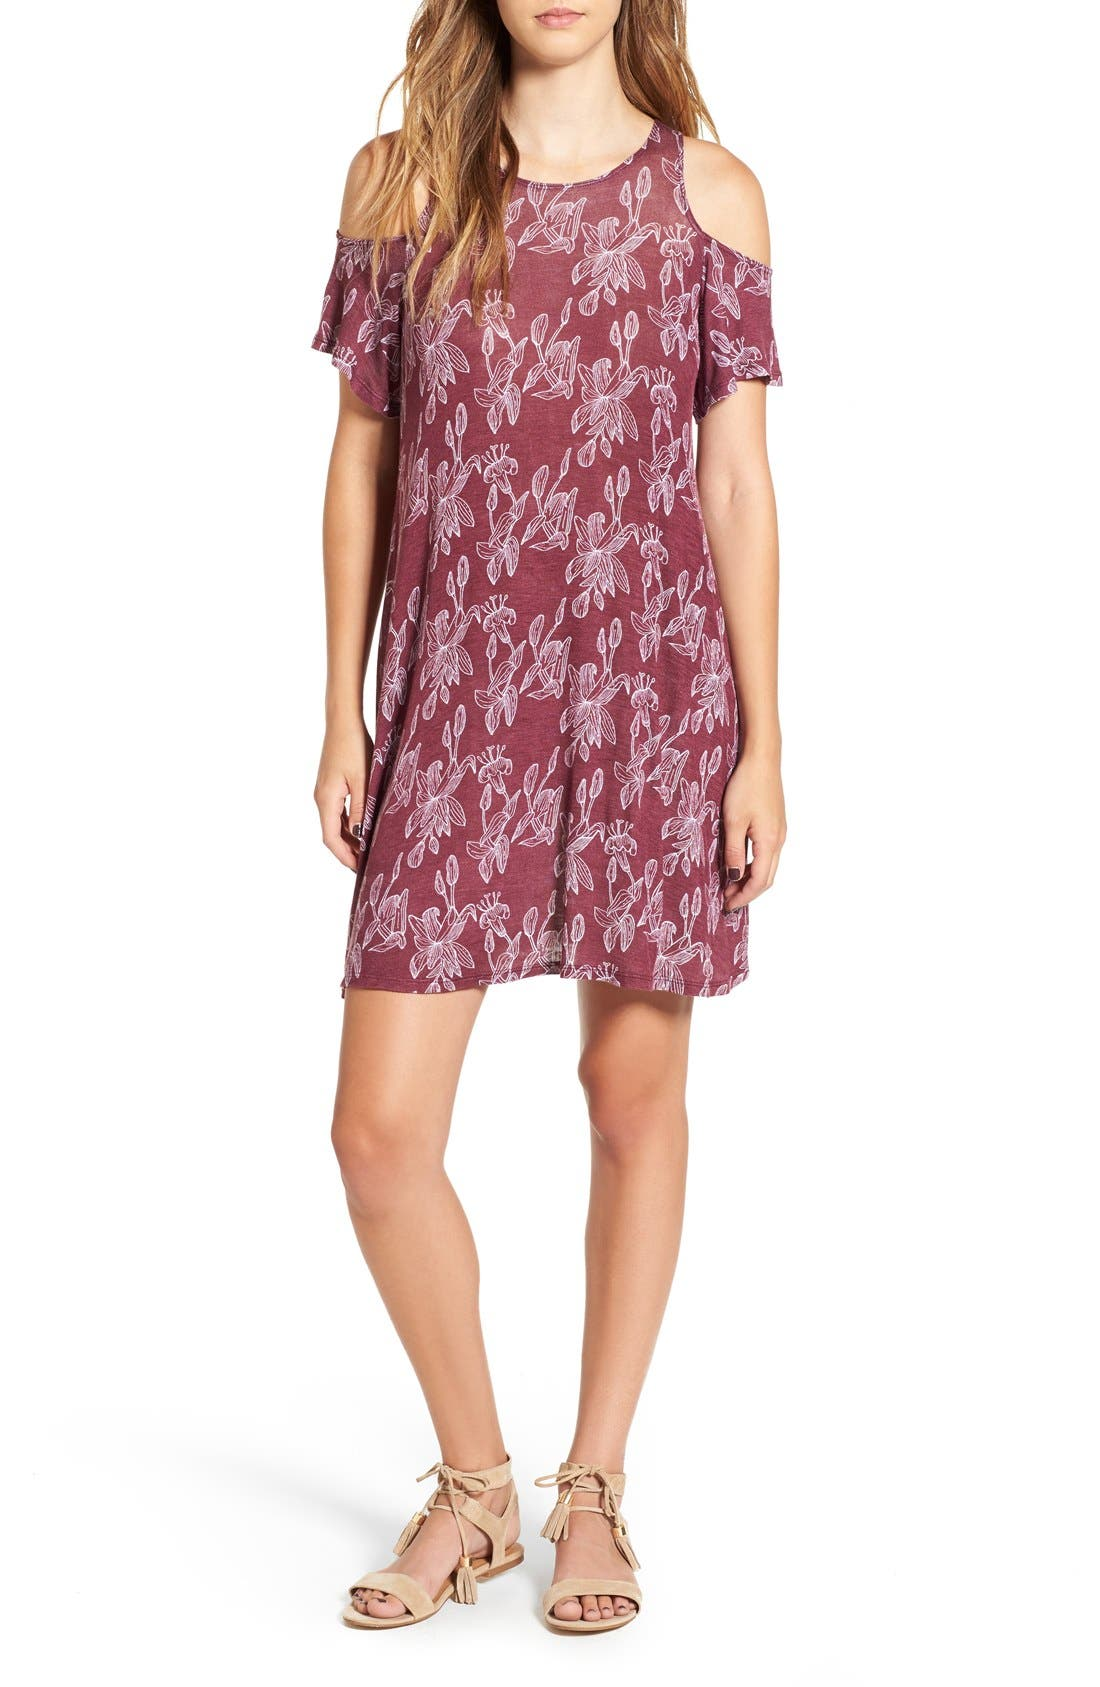 Alternate Image 1 Selected - Michelle by Comune 'Walthamstow' Floral Print Shift Dress